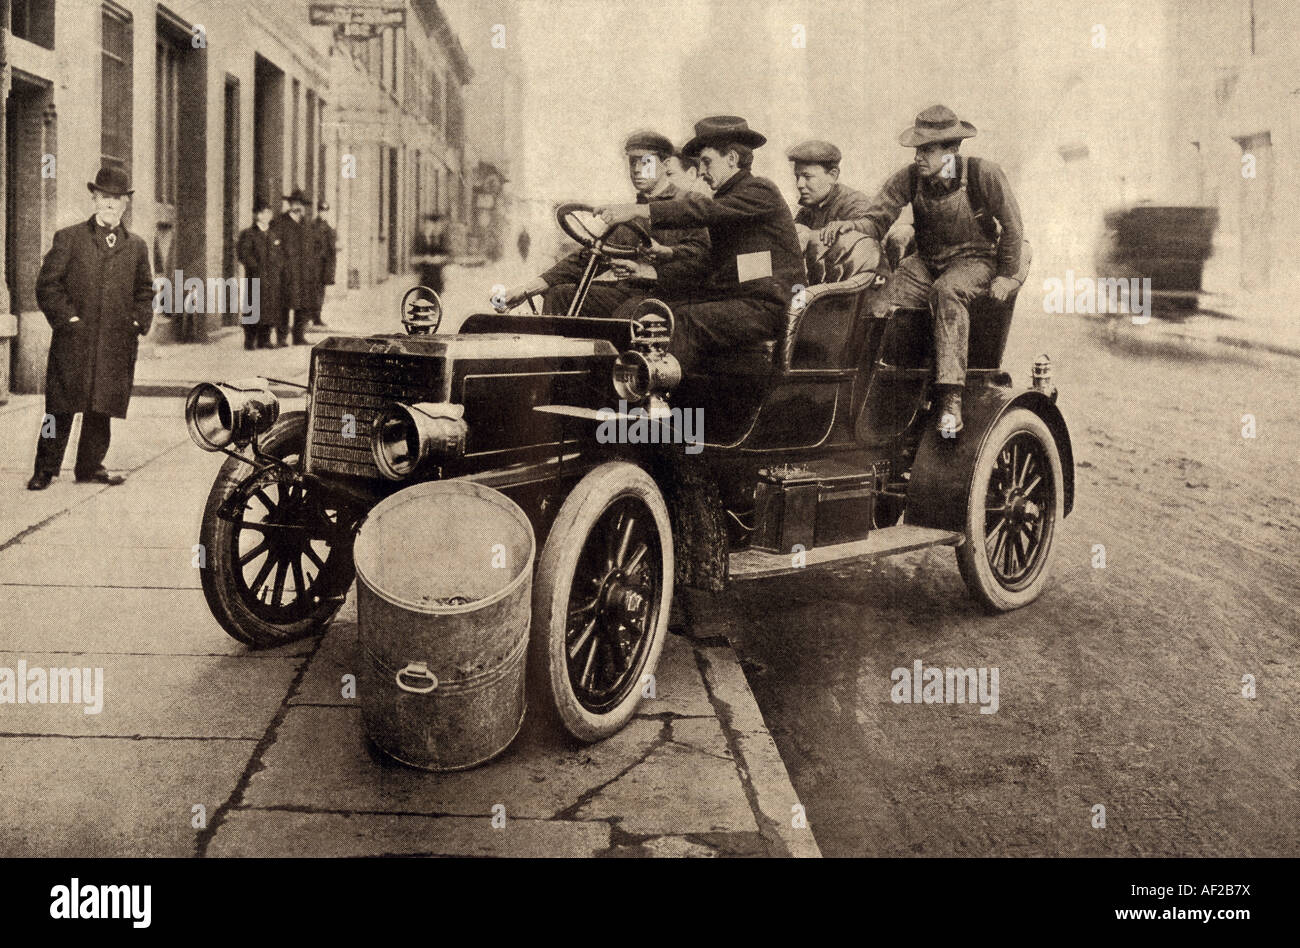 Invention Automobile Stock Photos & Invention Automobile Stock ...